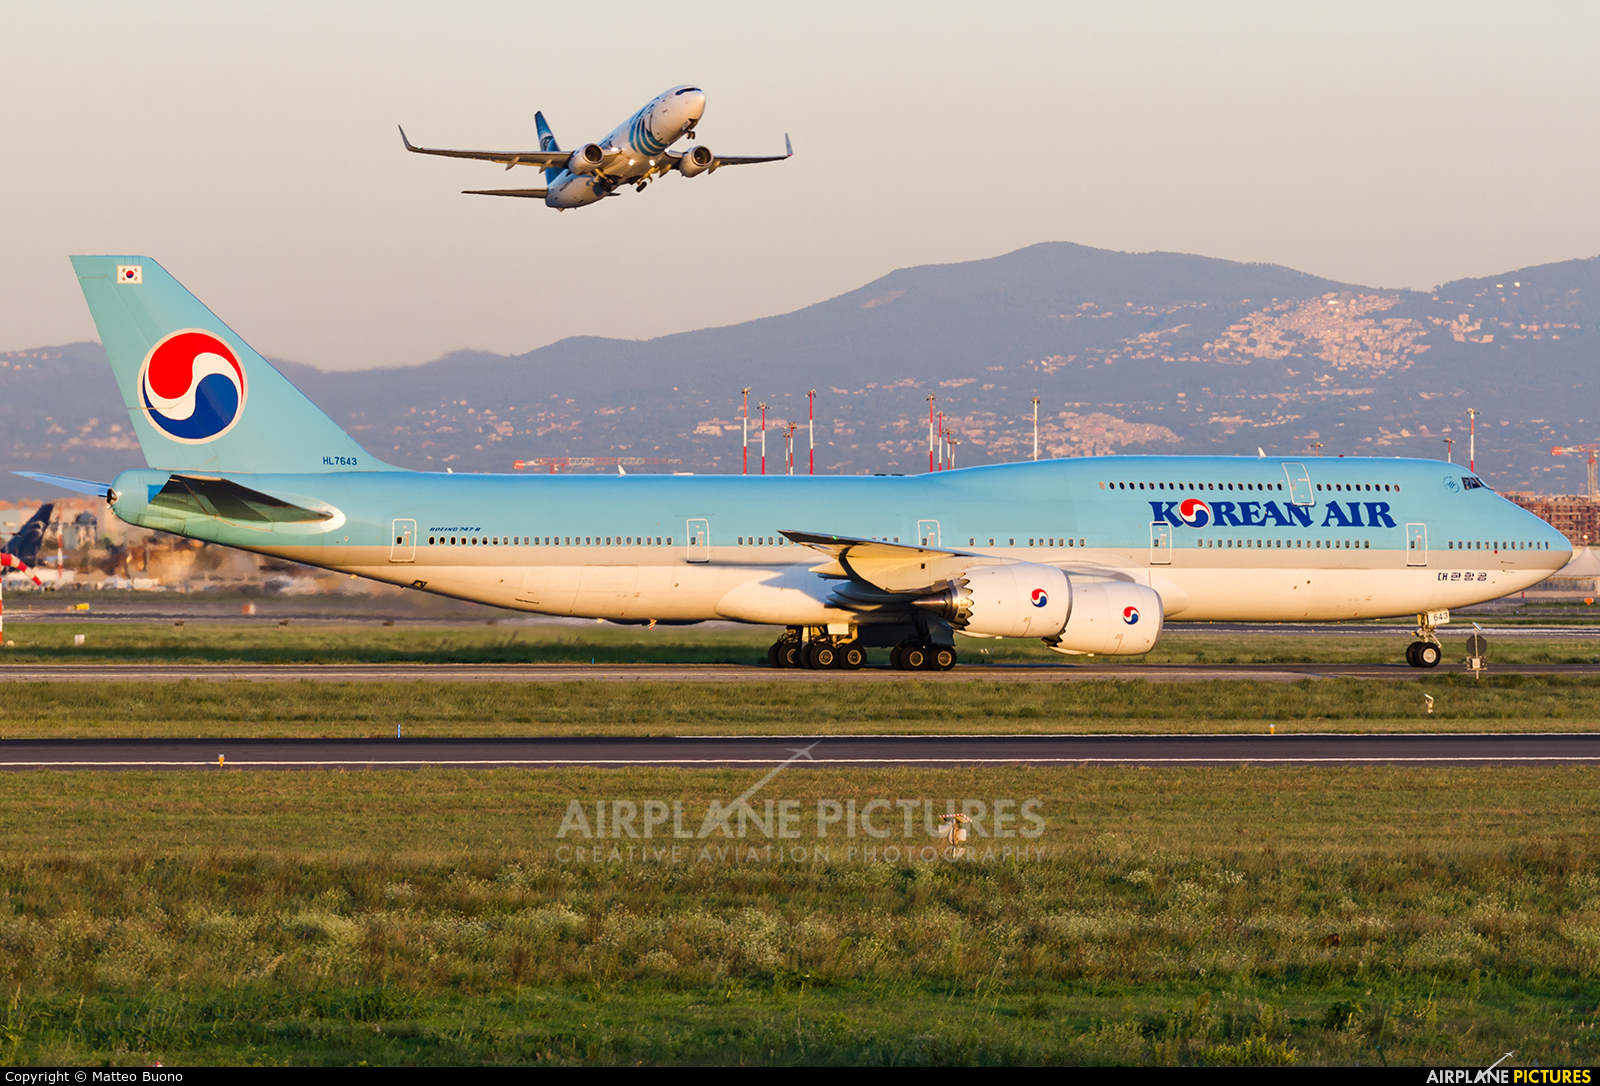 Korean Air HL7643 aircraft at Rome - Fiumicino